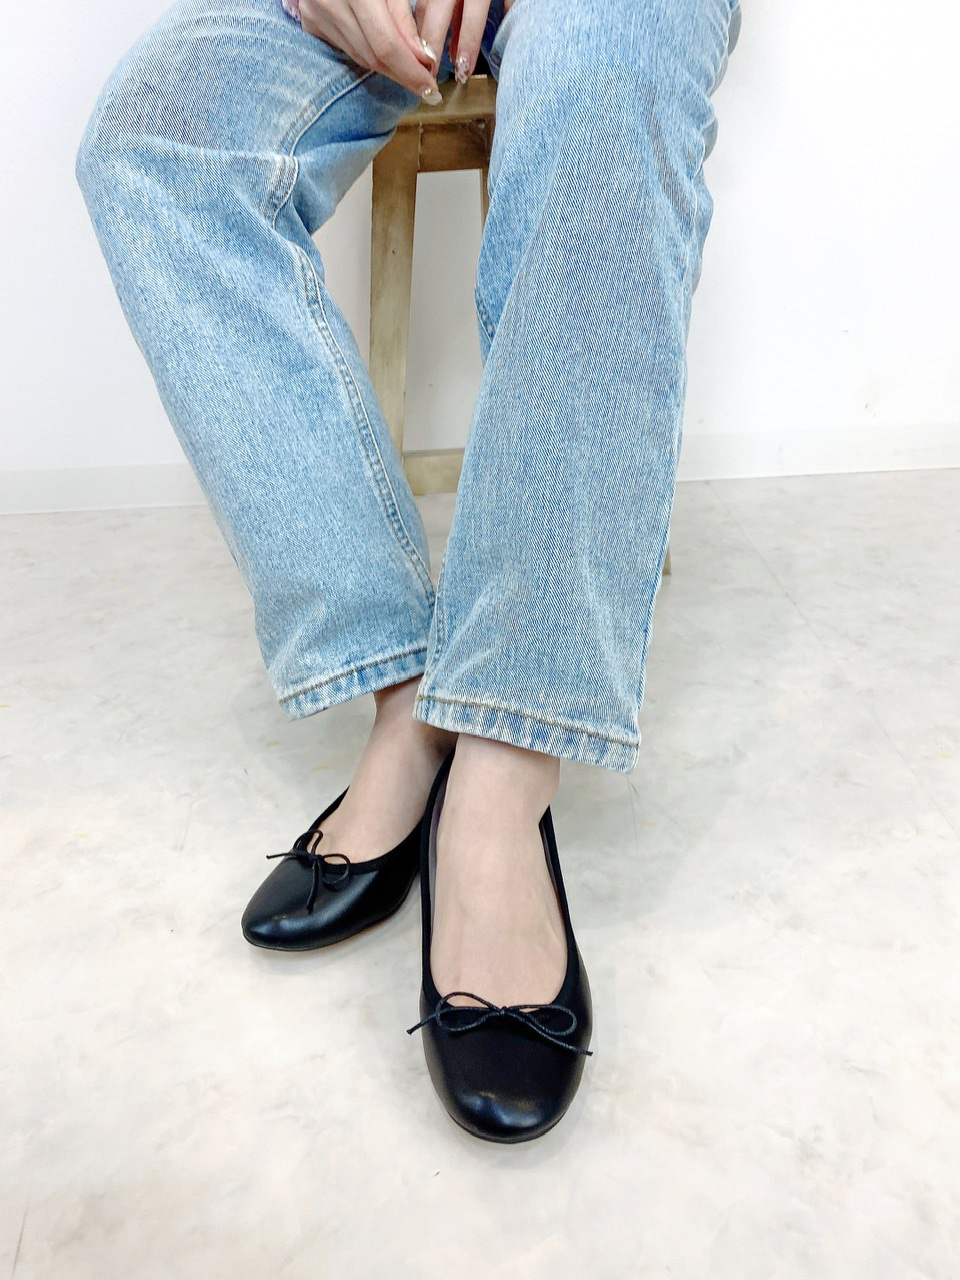 【OR】ballet shoes